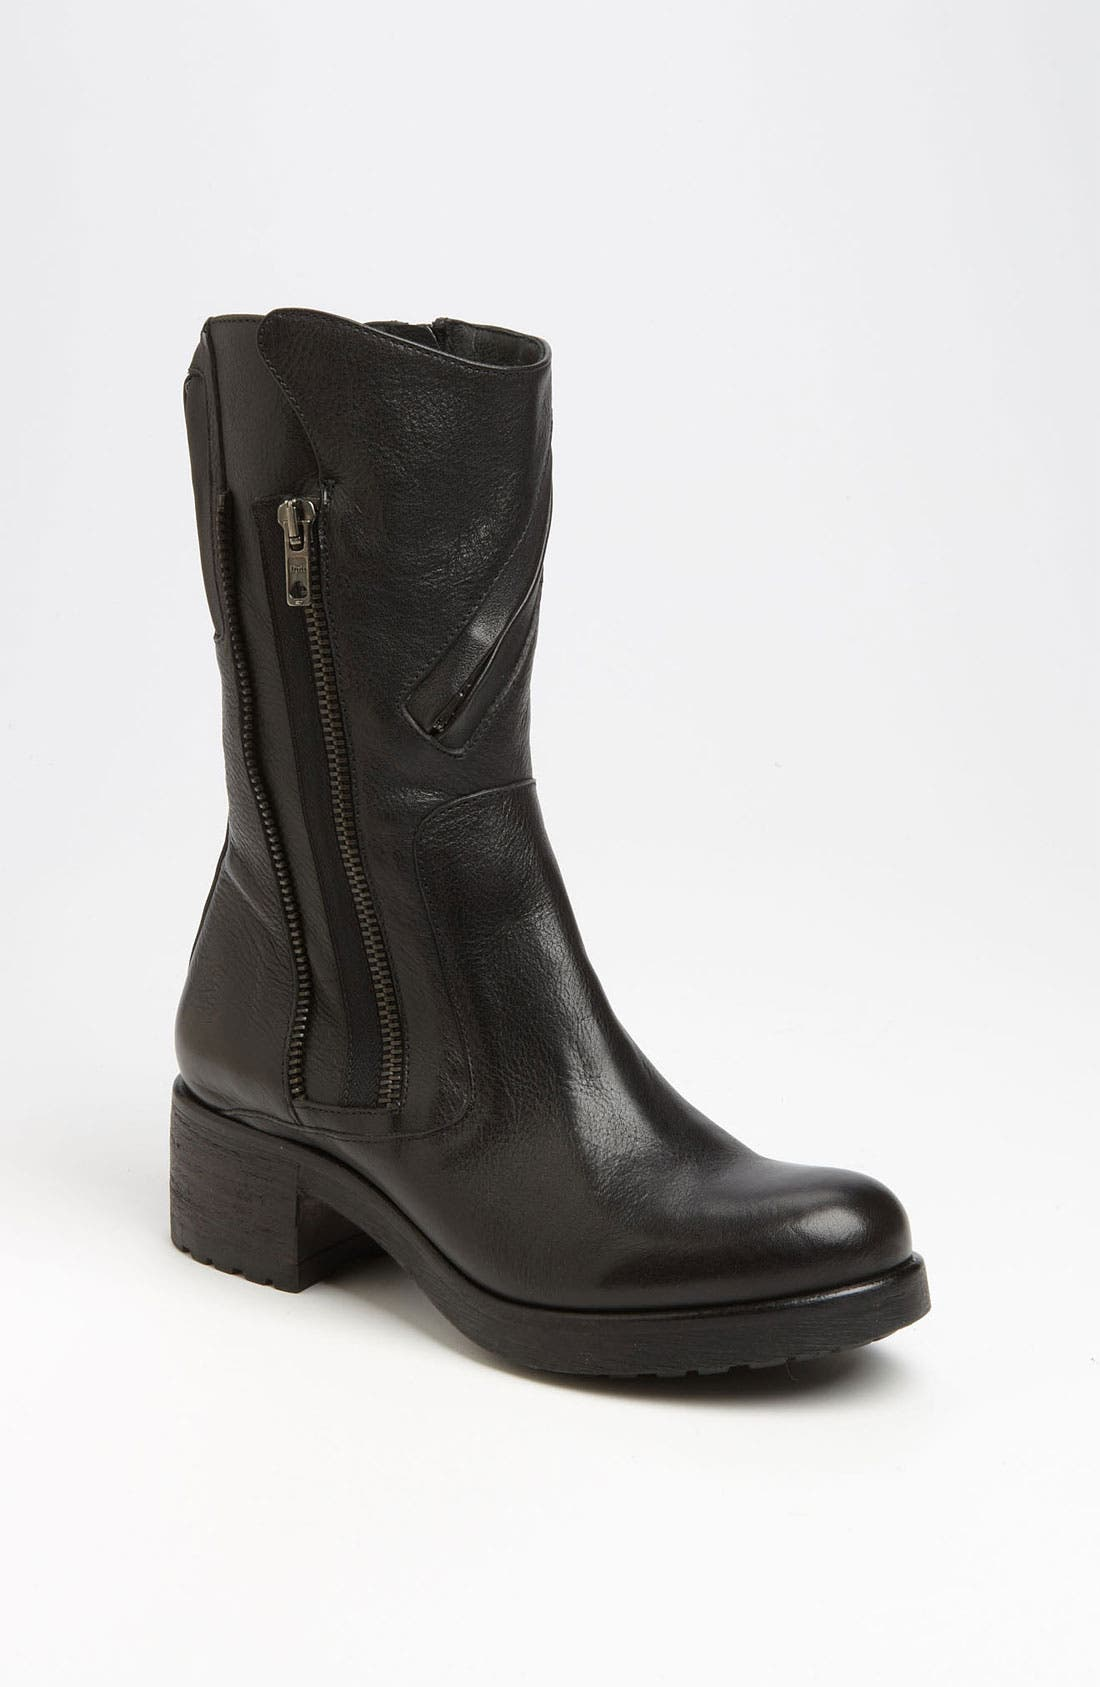 Alternate Image 1 Selected - Vera Wang Footwear 'Evie' Boot